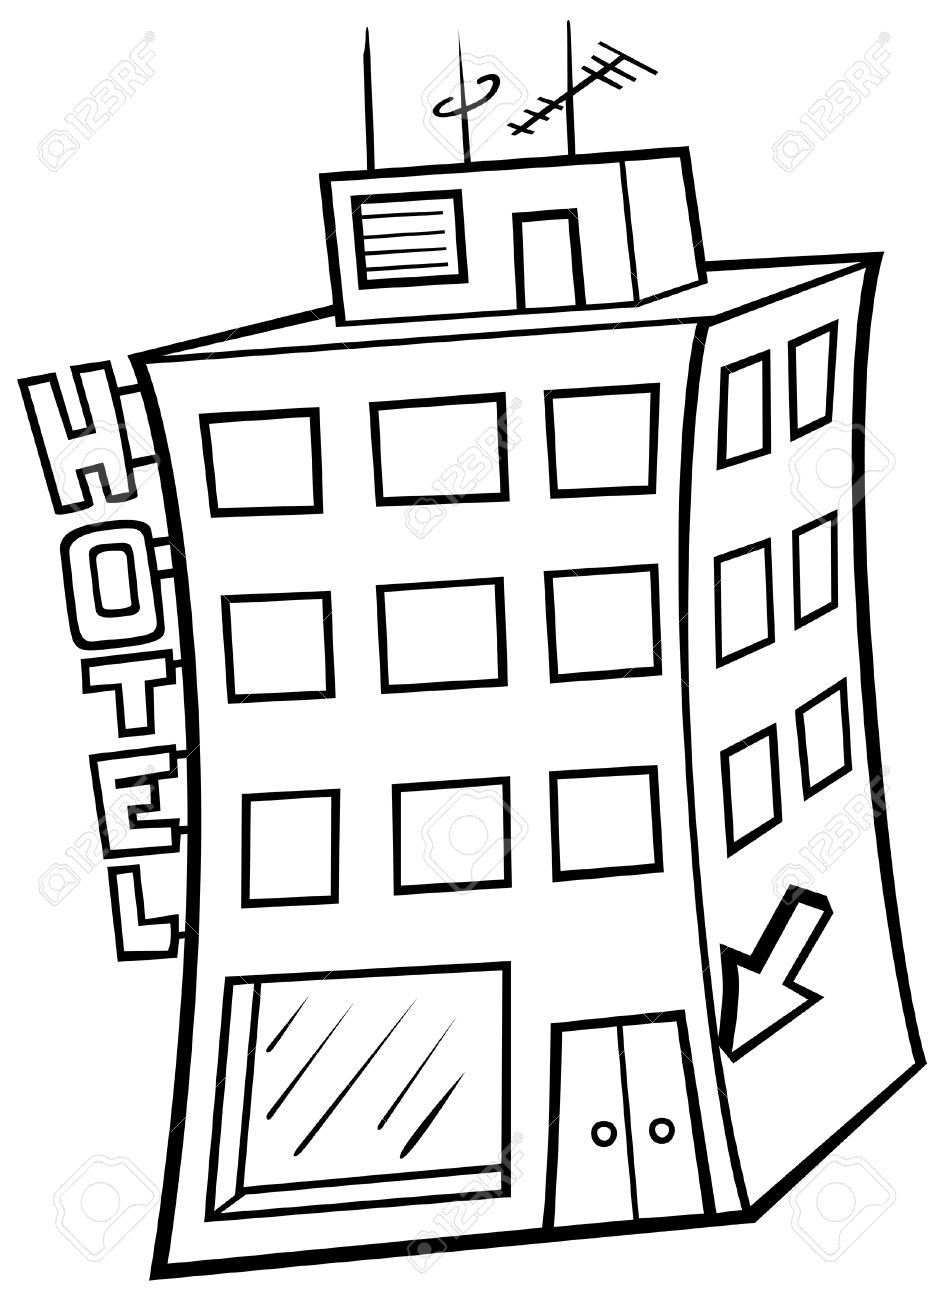 Hotel clipart black and white 7 » Clipart Station.